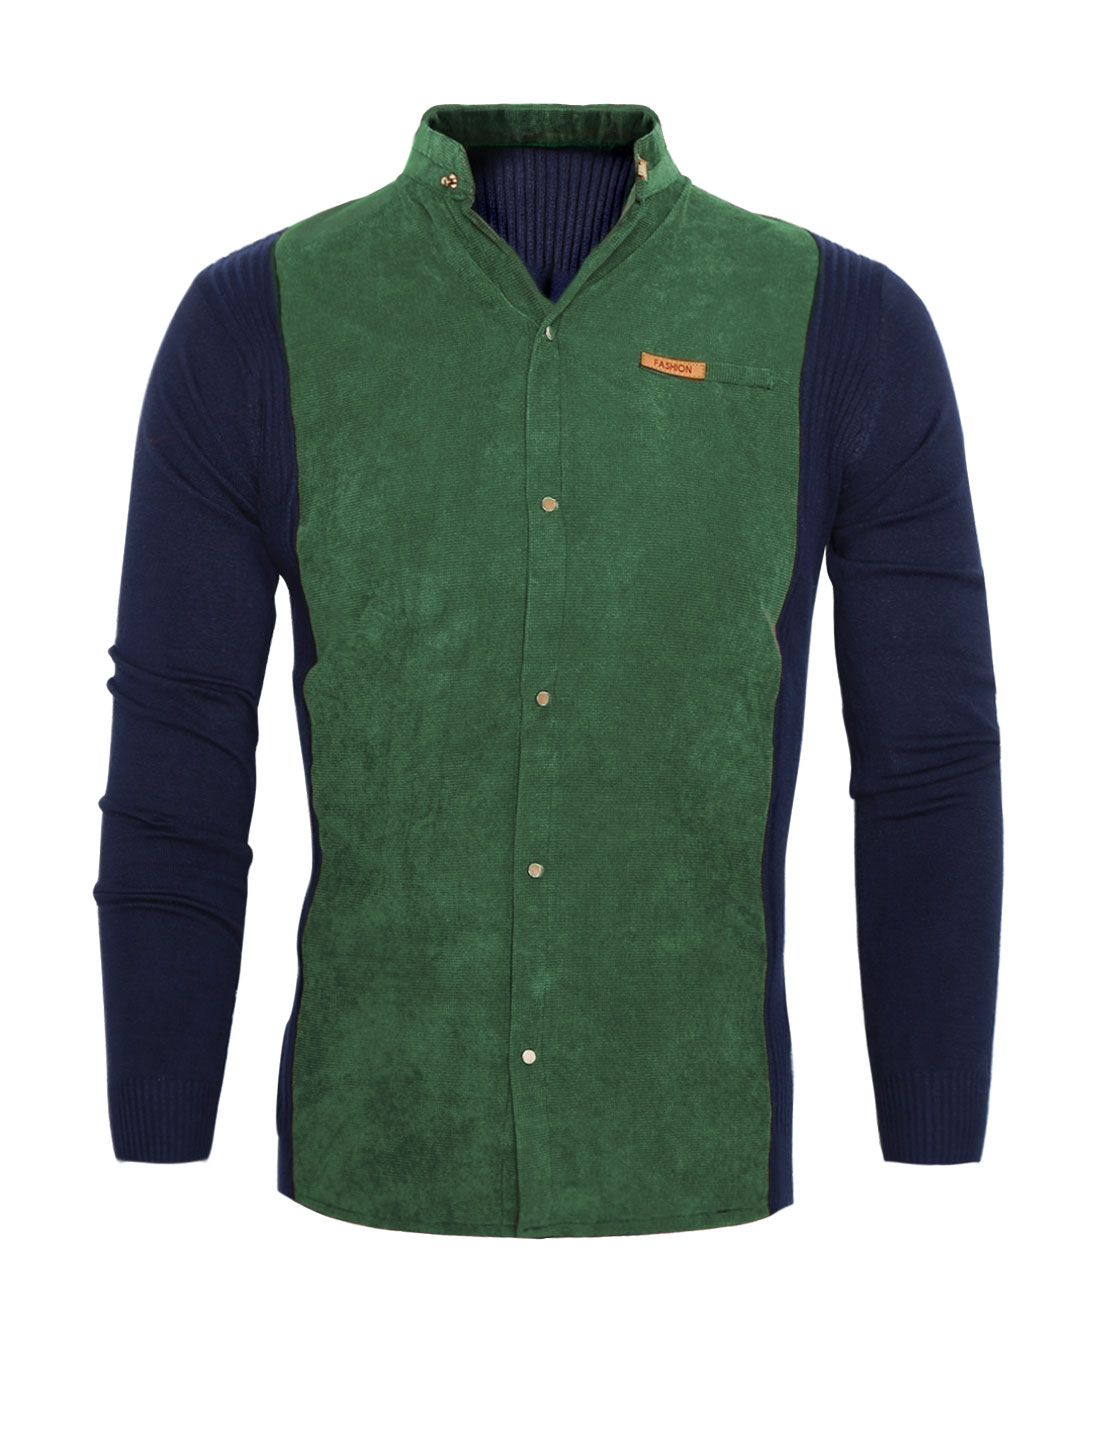 Men Stand Collar Long Sleeves Contrast Color Corduroy Panel Knit Shirt Green S